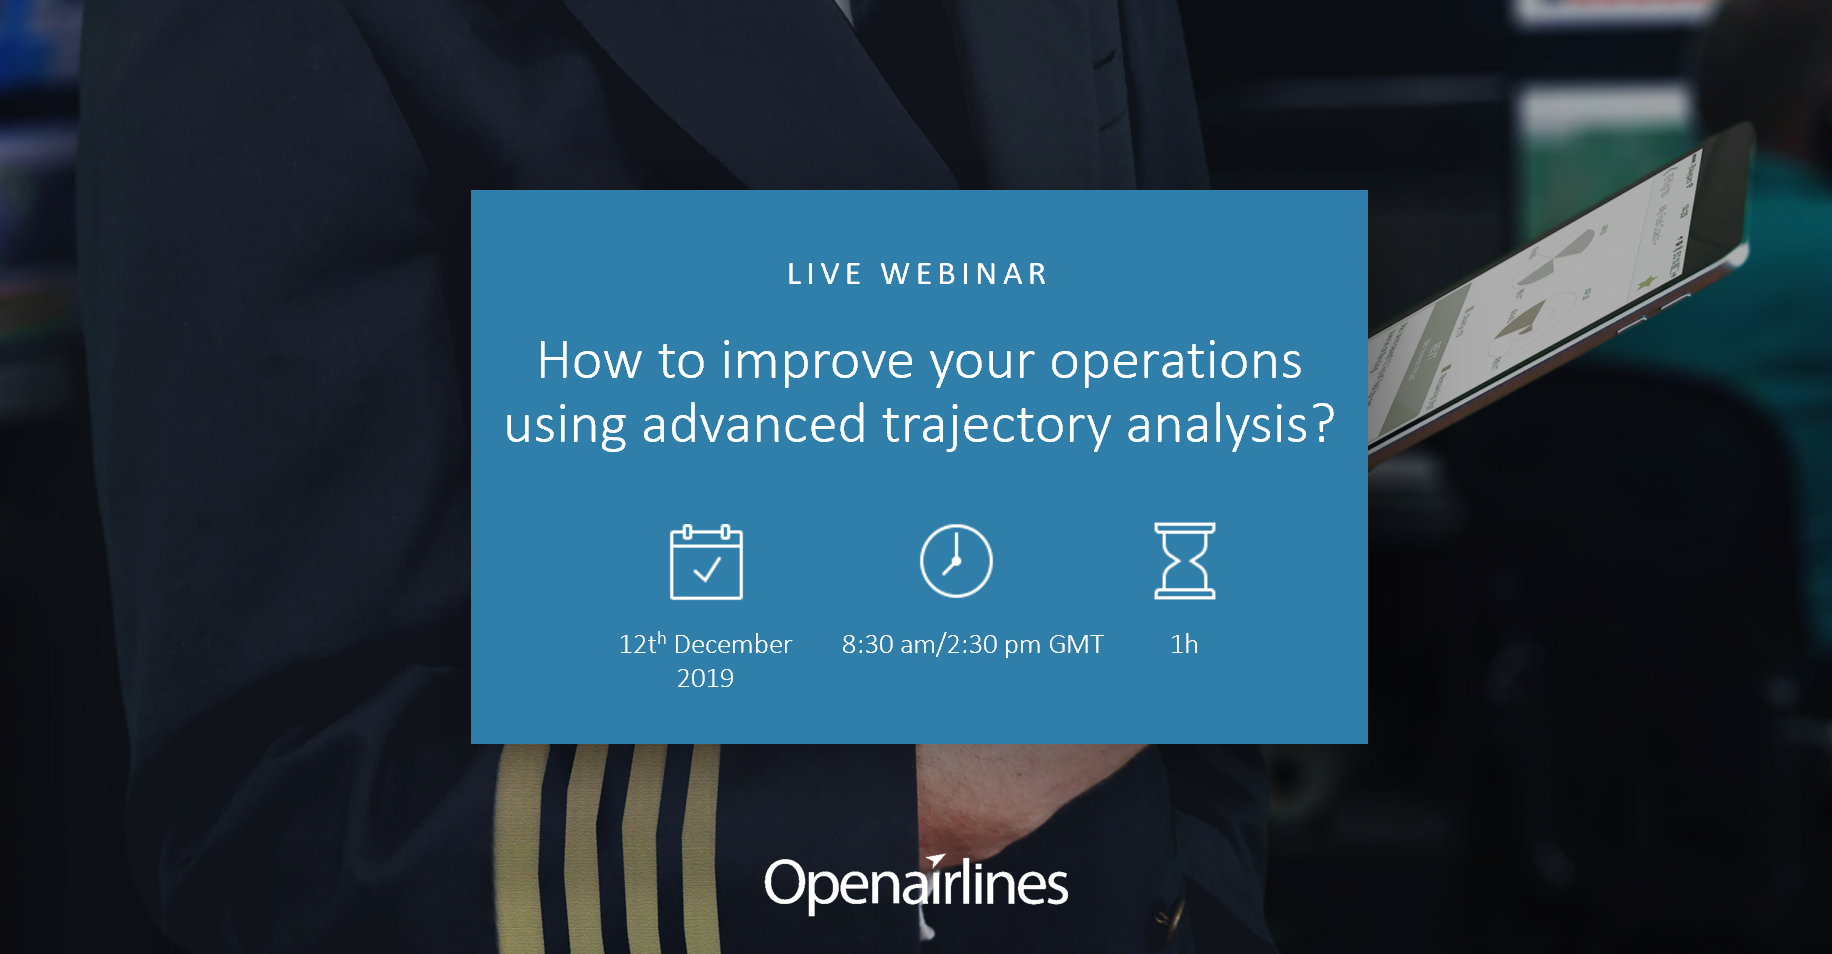 webinar-openairlines-how-to-improve-your-operations-using-advanced-trajectory-analysis